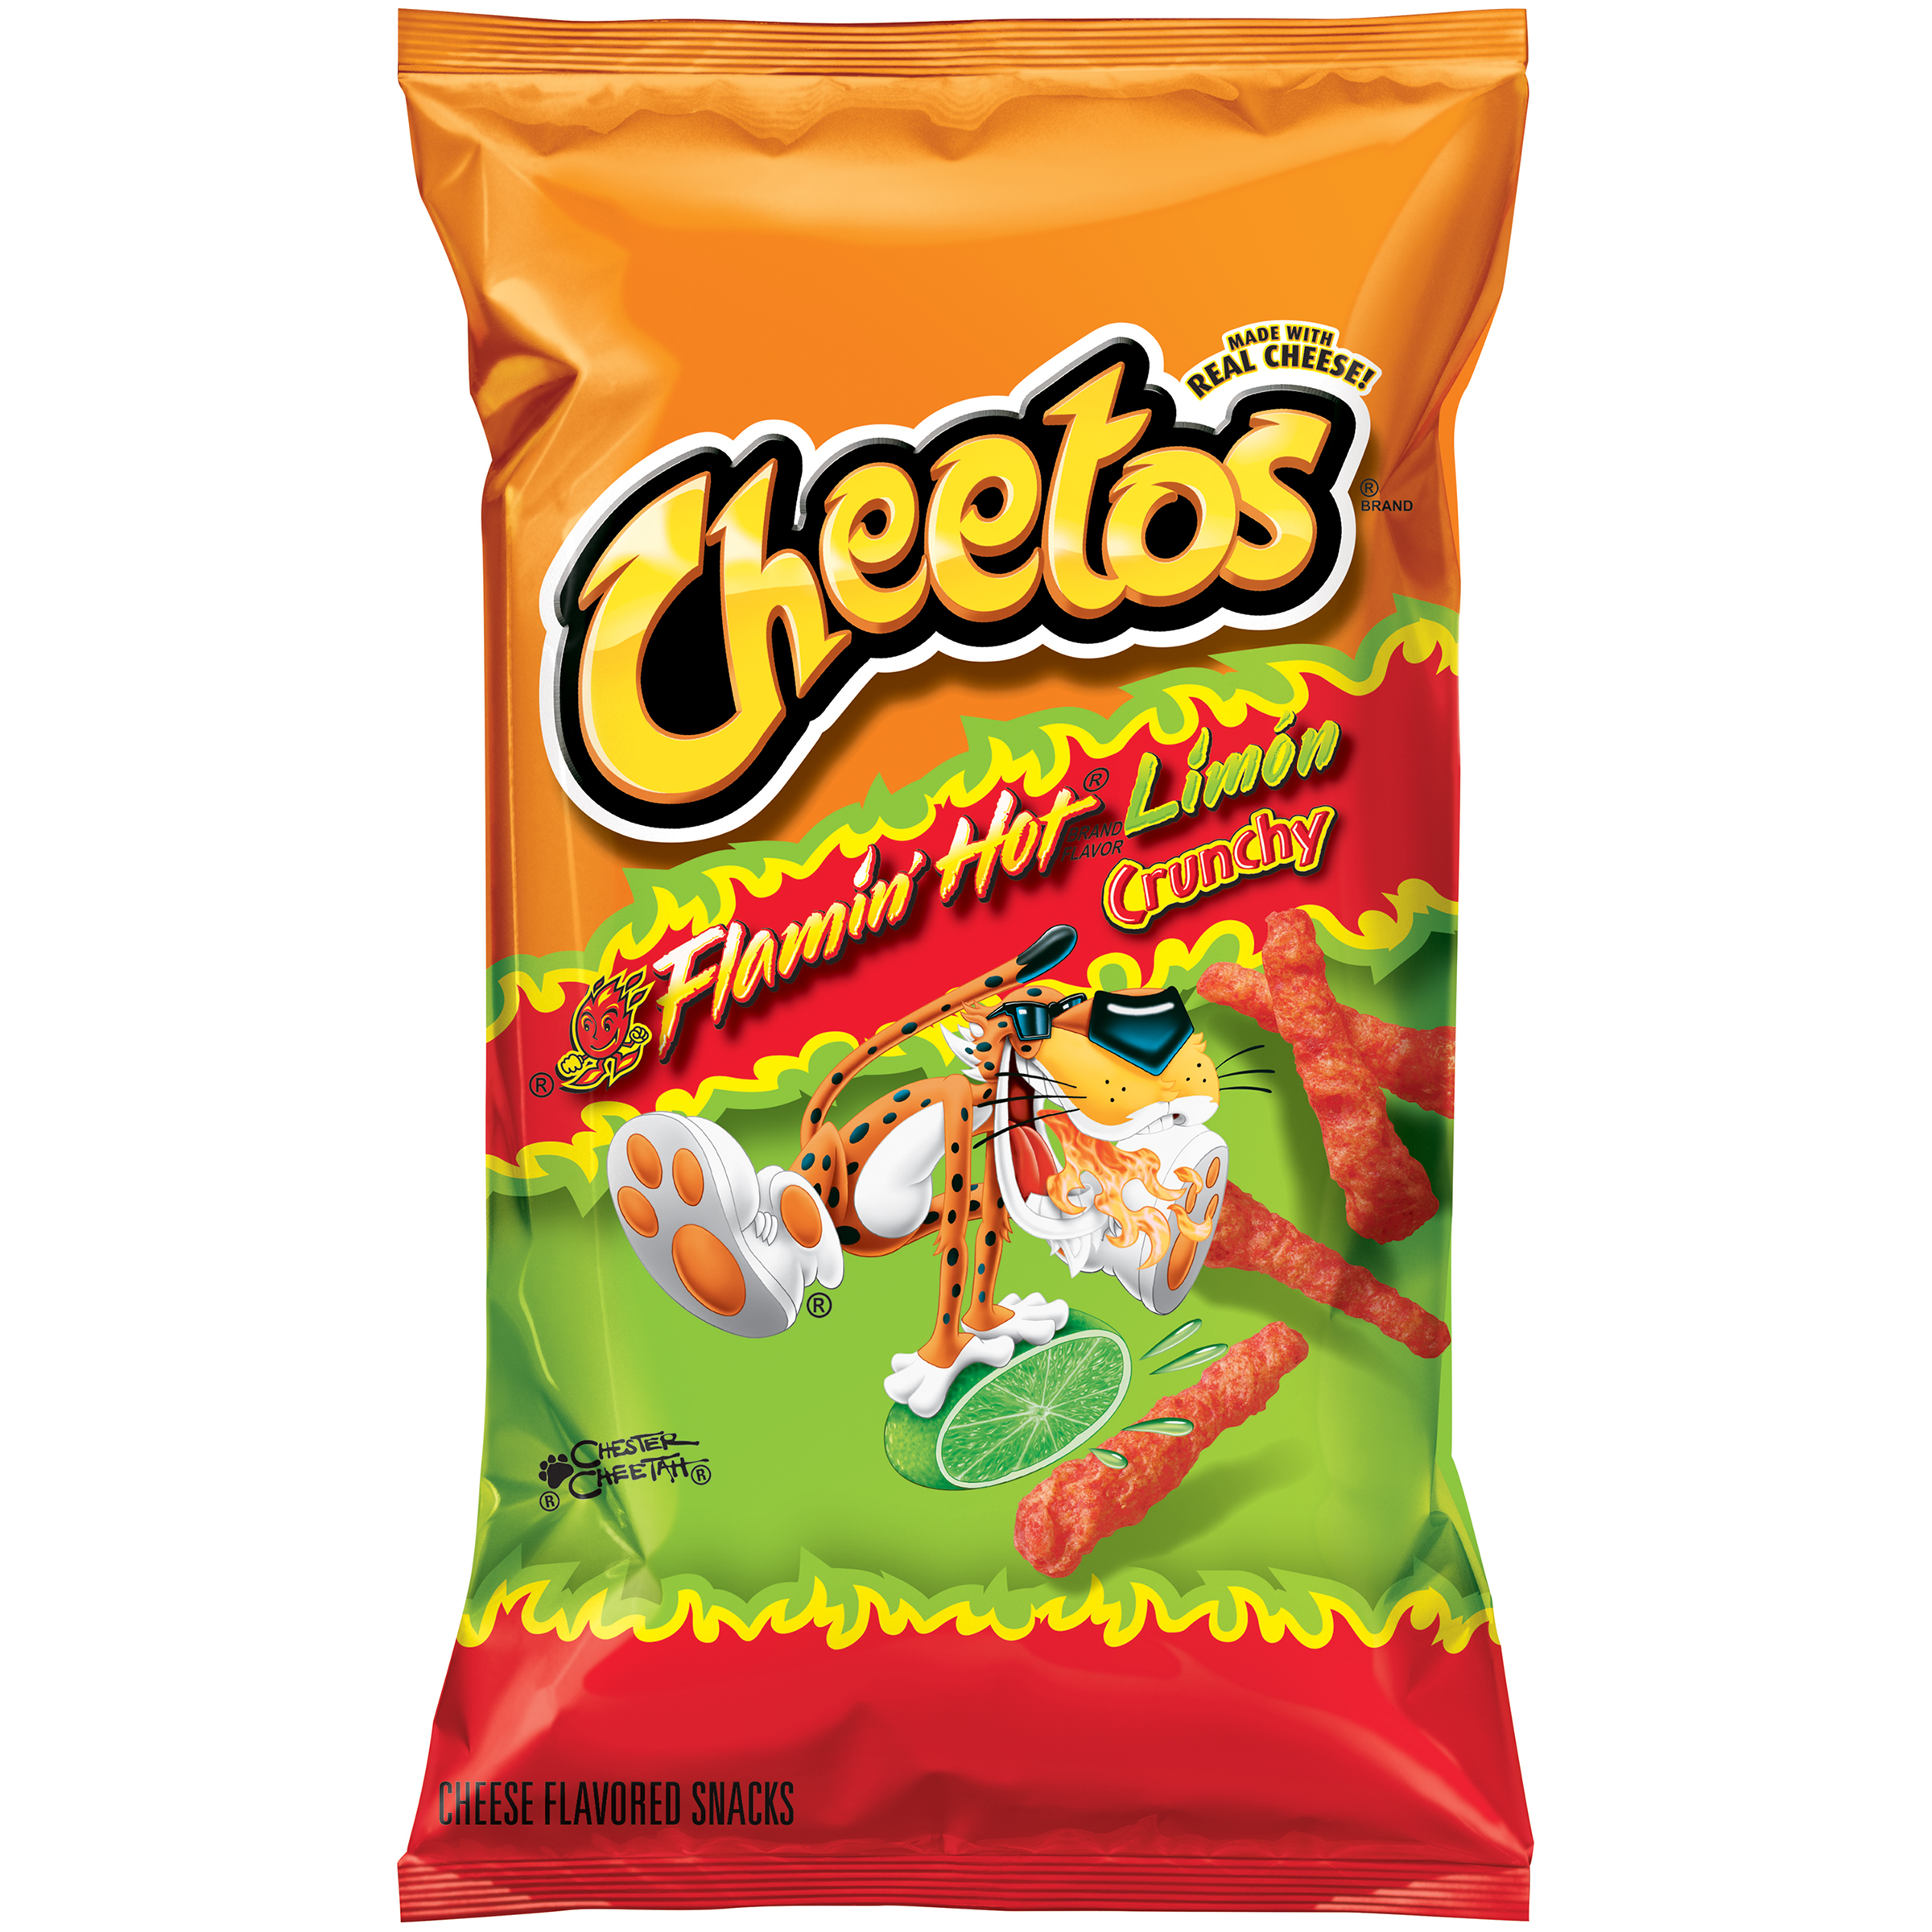 Cheetos® Flamin' Hot® Limón Crunchy Cheese Flavored Snacks 8.5 oz. Bag